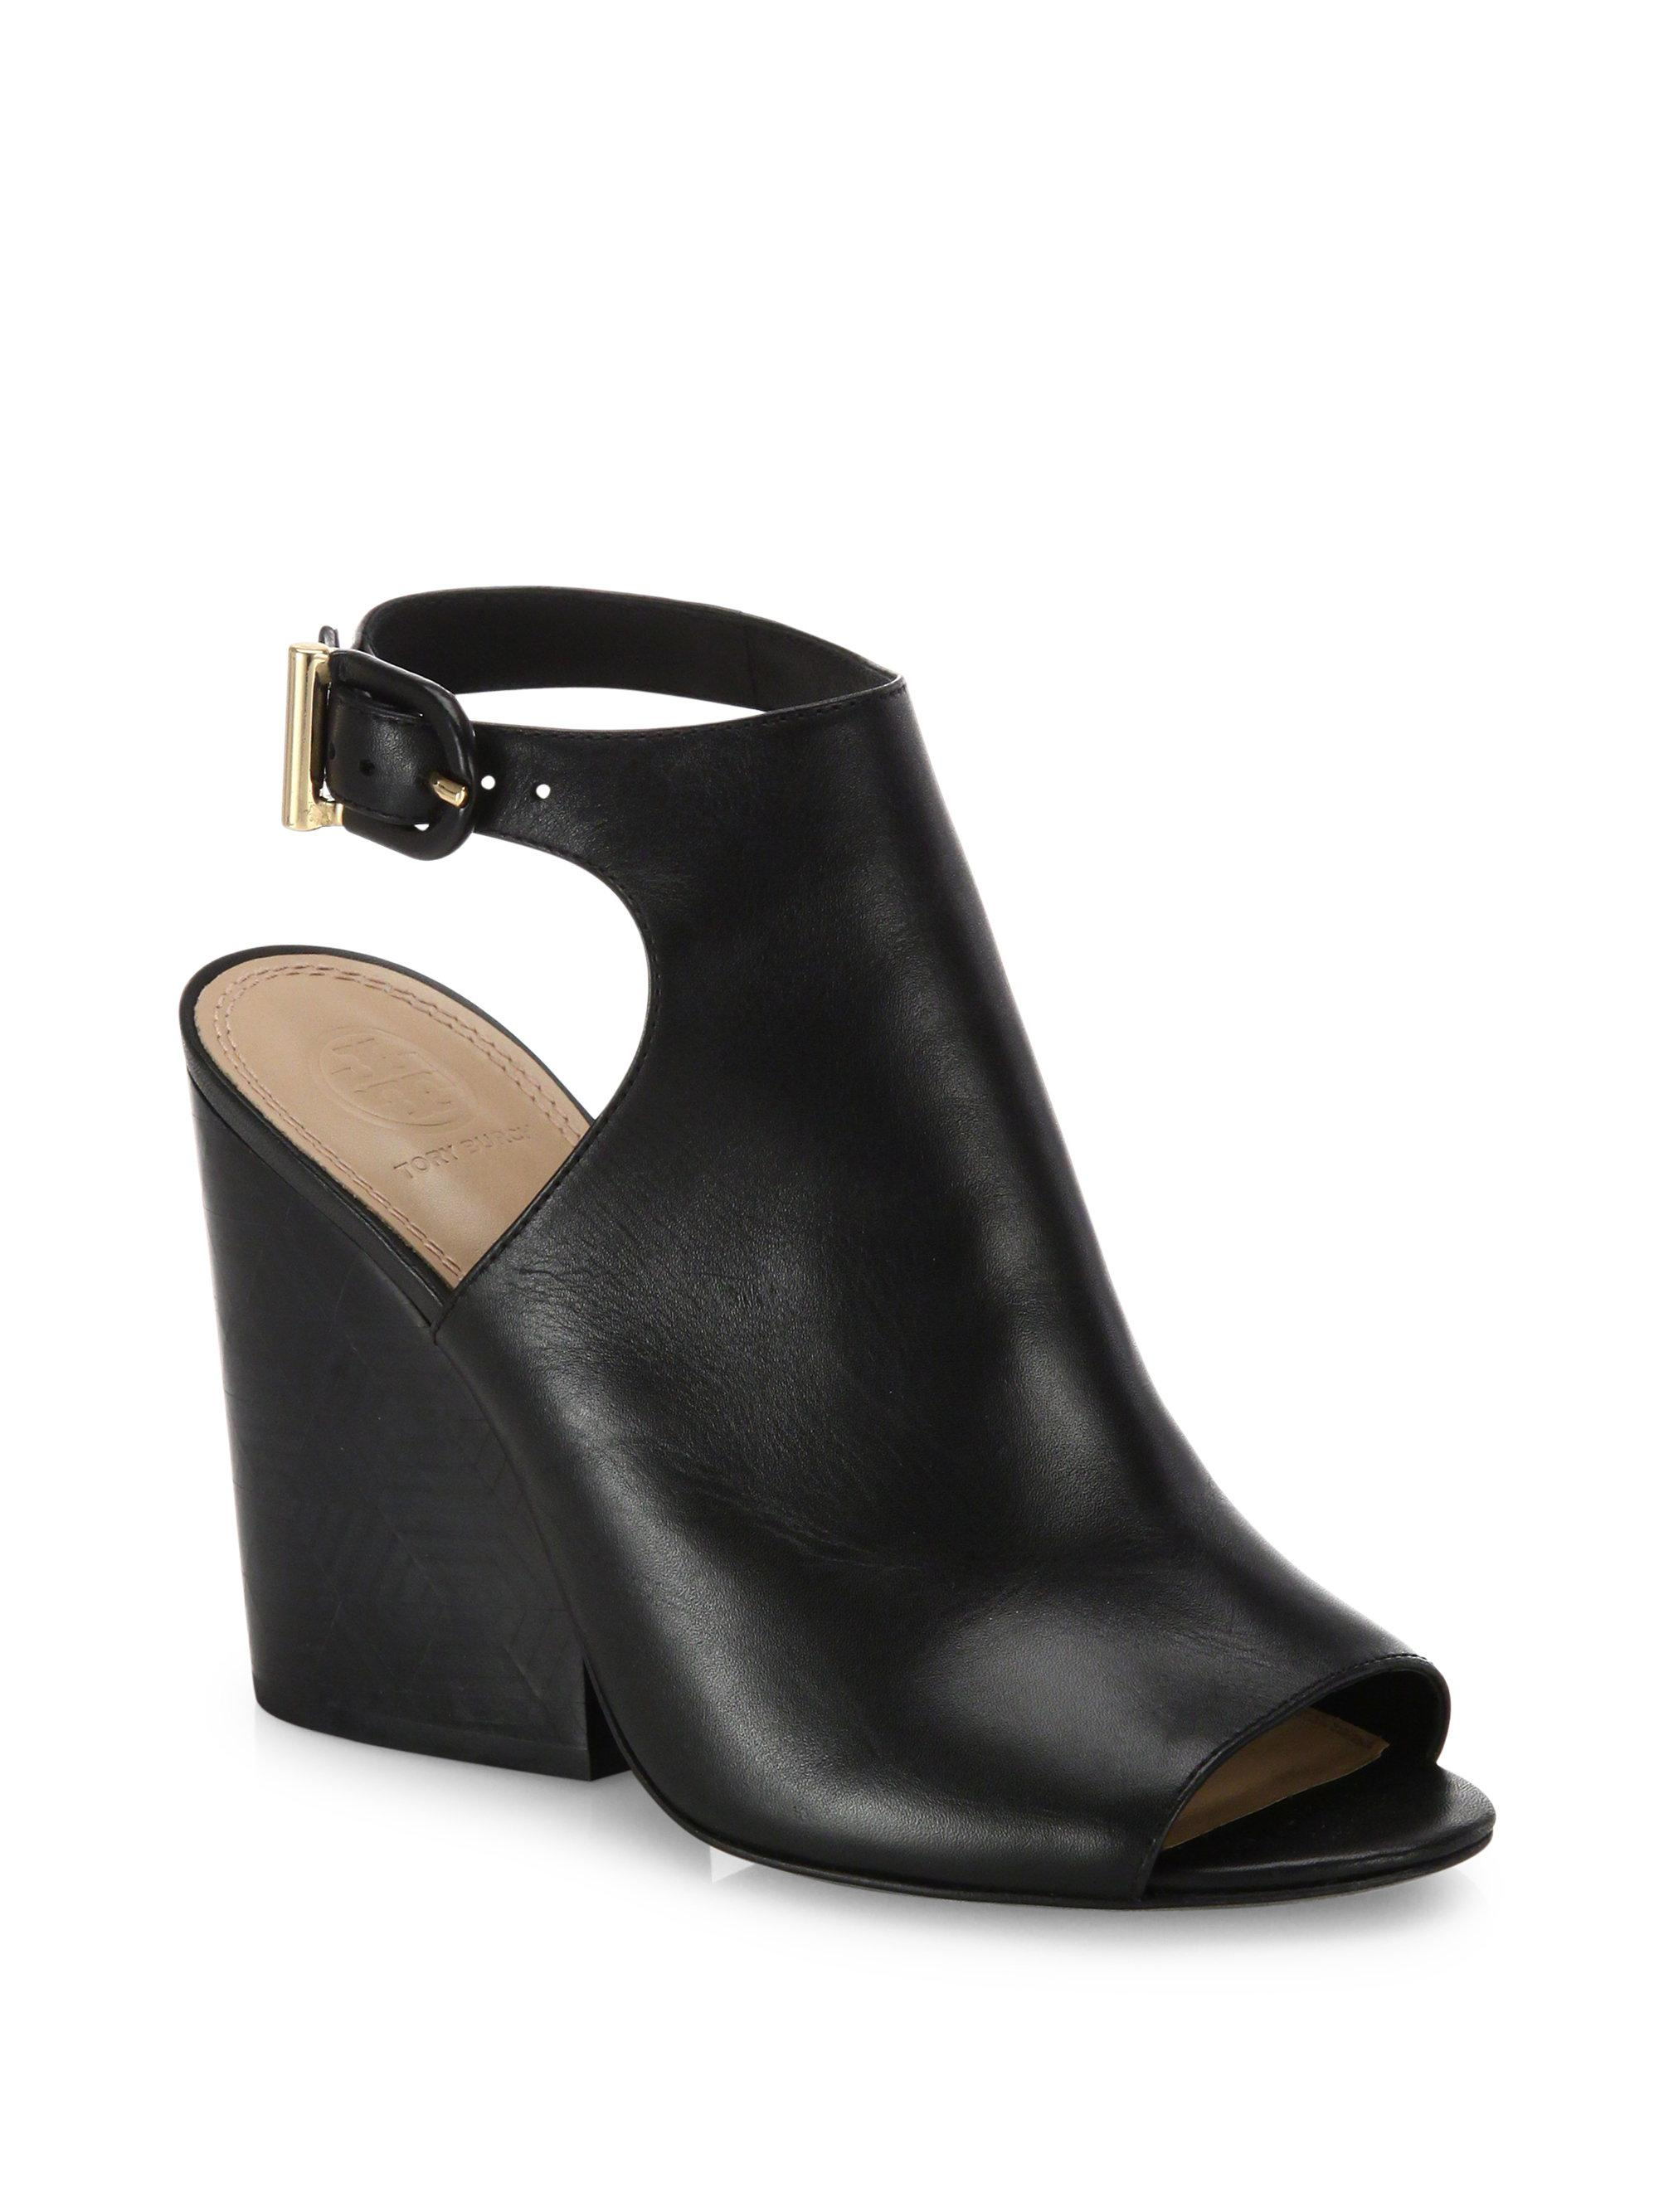 92c0d464e Lyst - Tory Burch Grove Open-toe Leather Wedge Booties in Black